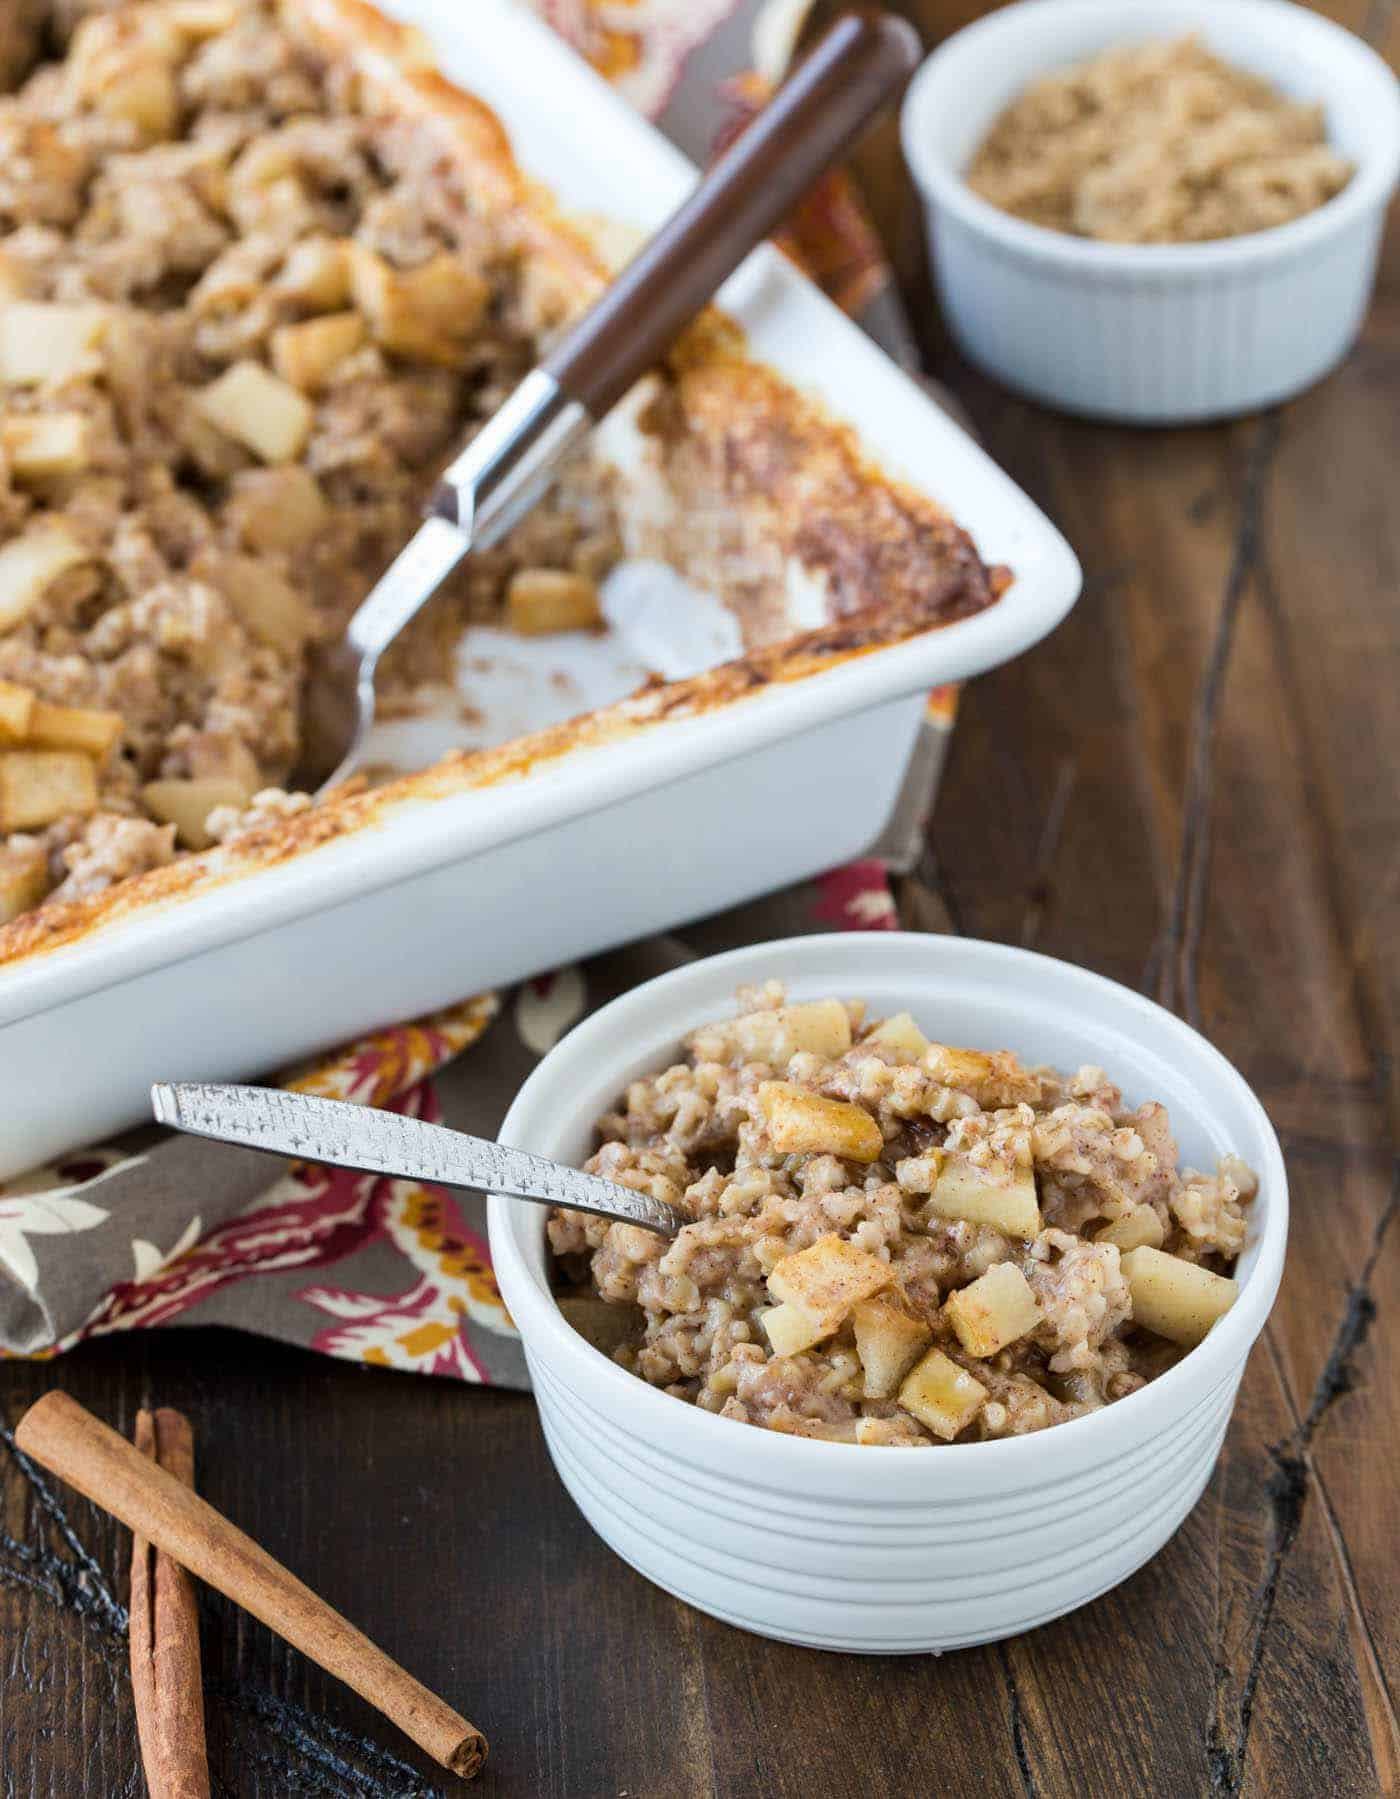 Baked Steel Cut Oatmeal Recipe With Apples And Cinnamon Garnish